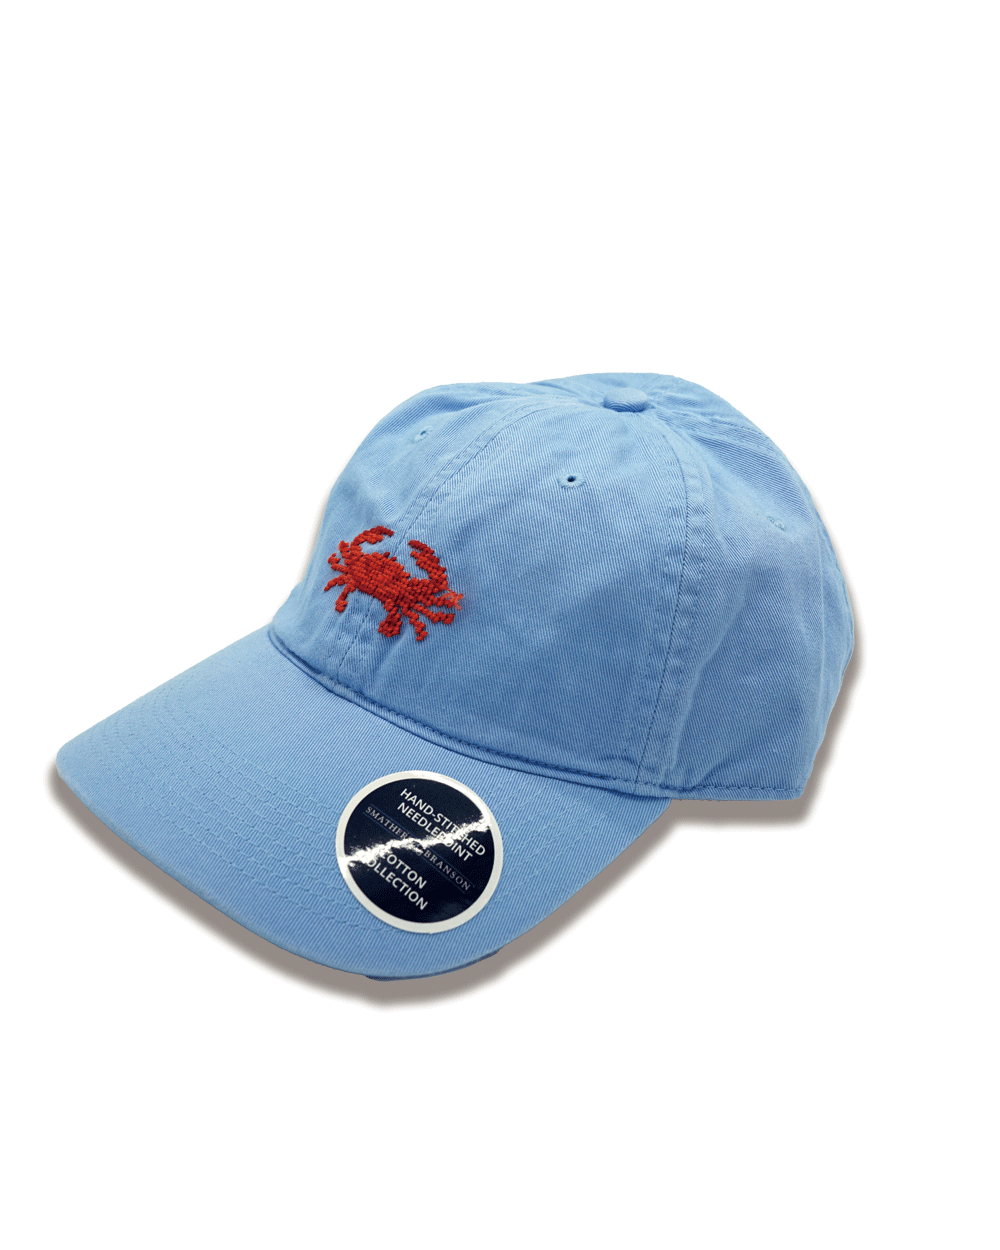 SMATHERS&BRANSON Coral Crab Needlepoint Hat (Light blue)